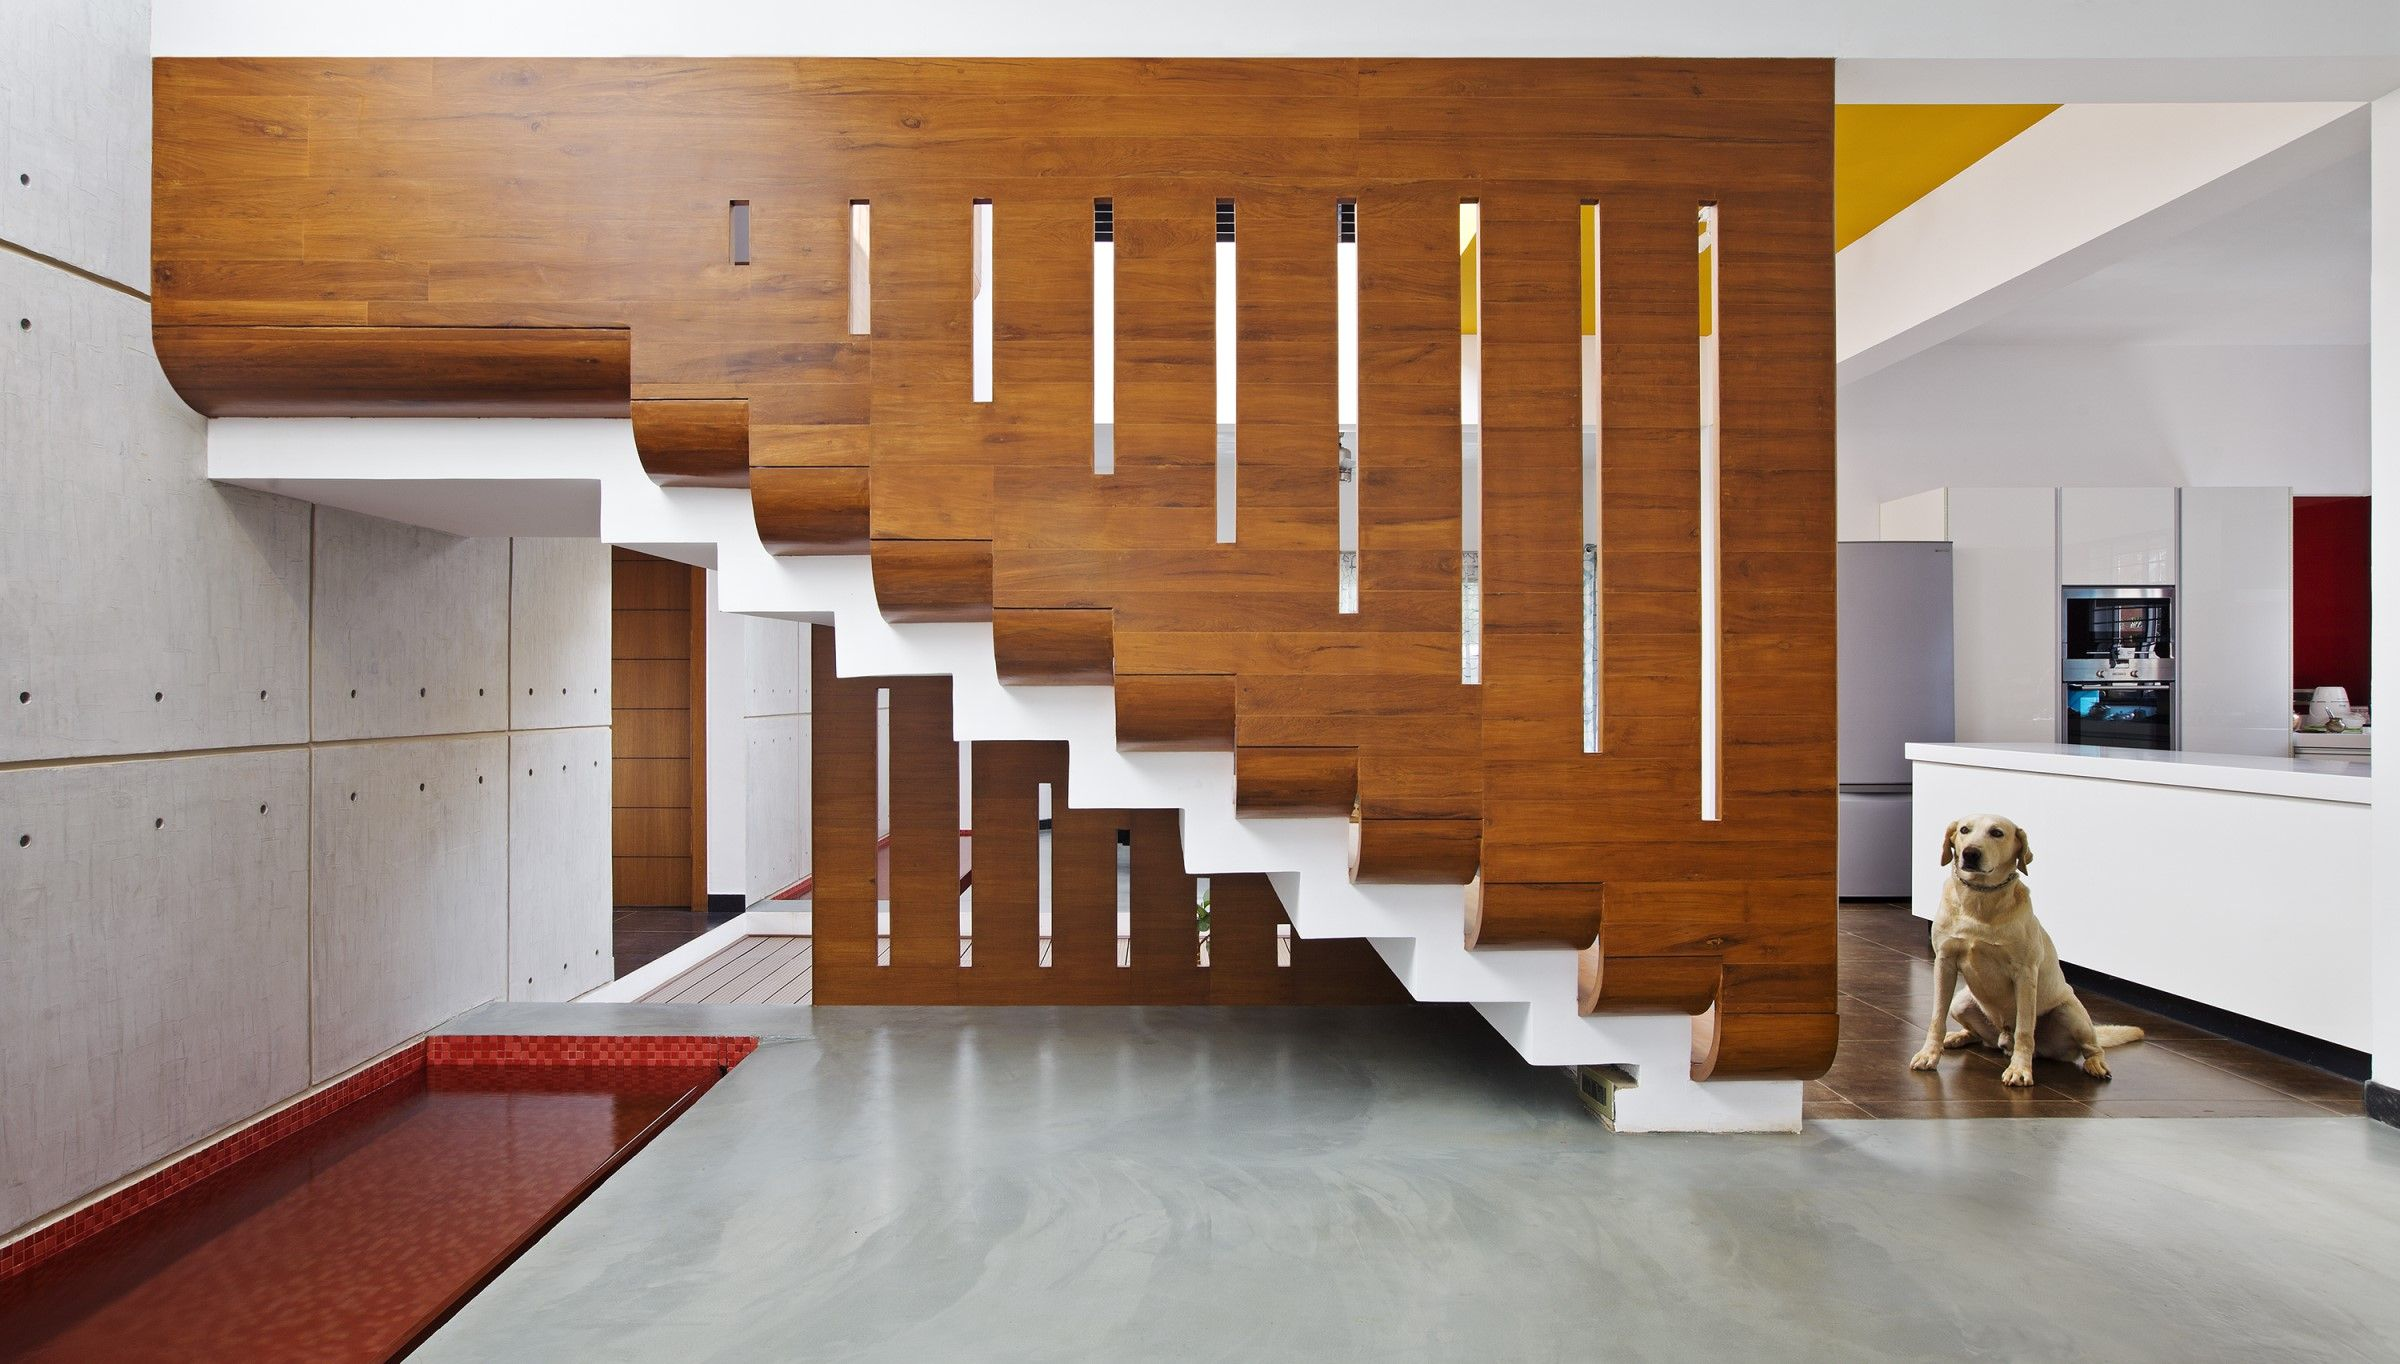 Indian home design ideas and images by renomania archello also dream house pinterest courtyard studio rh